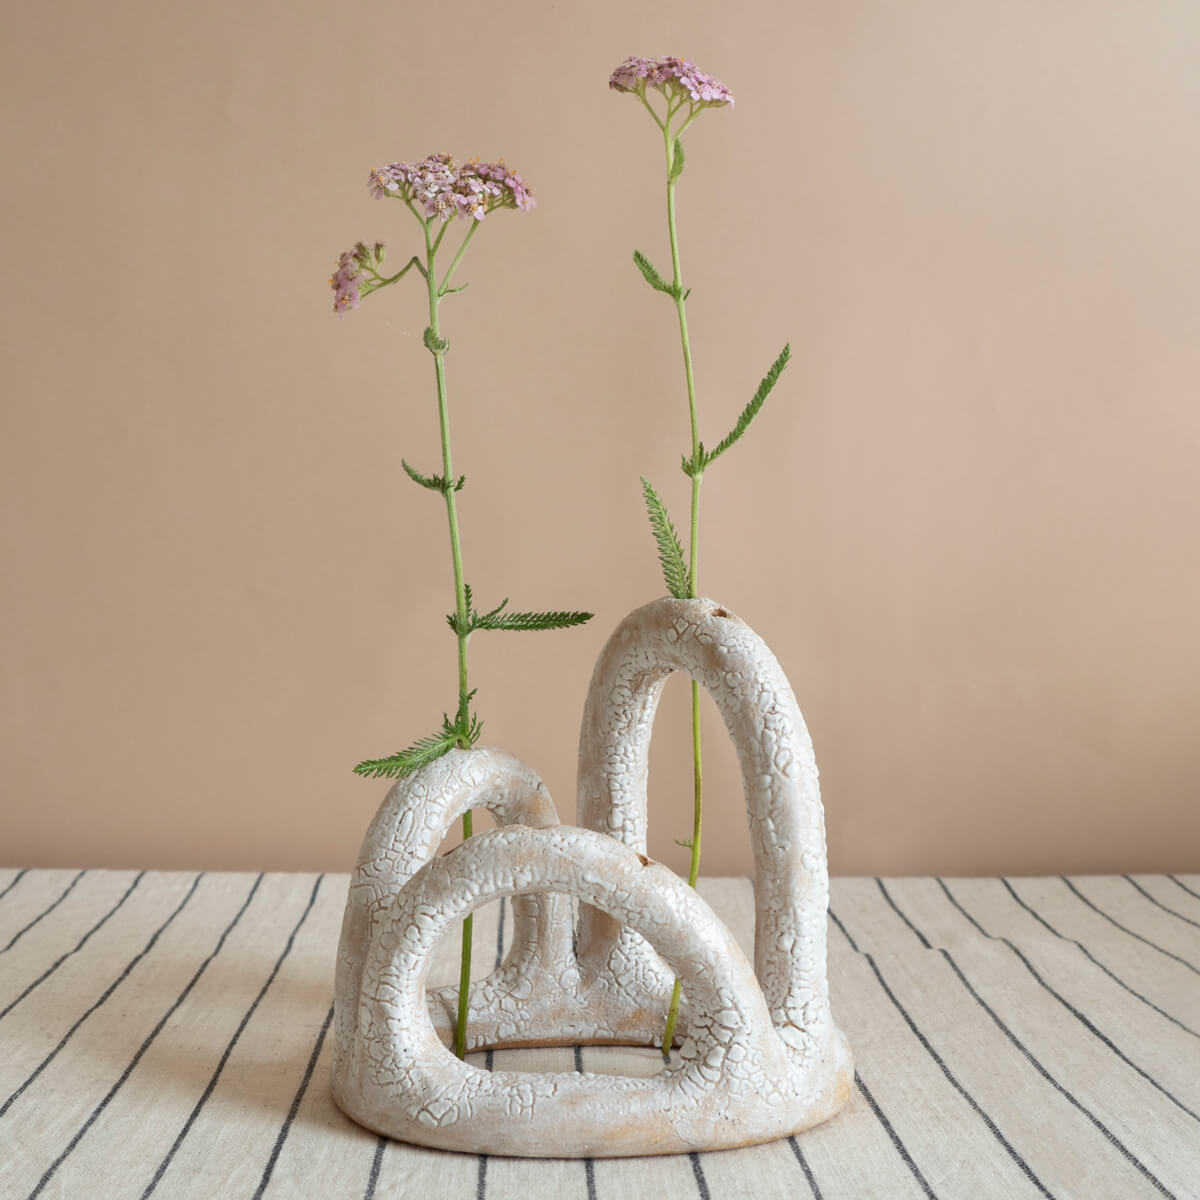 Bud vase with delicate flowers on a striped tablecloth, handmade by Manifesto for Curious Makers